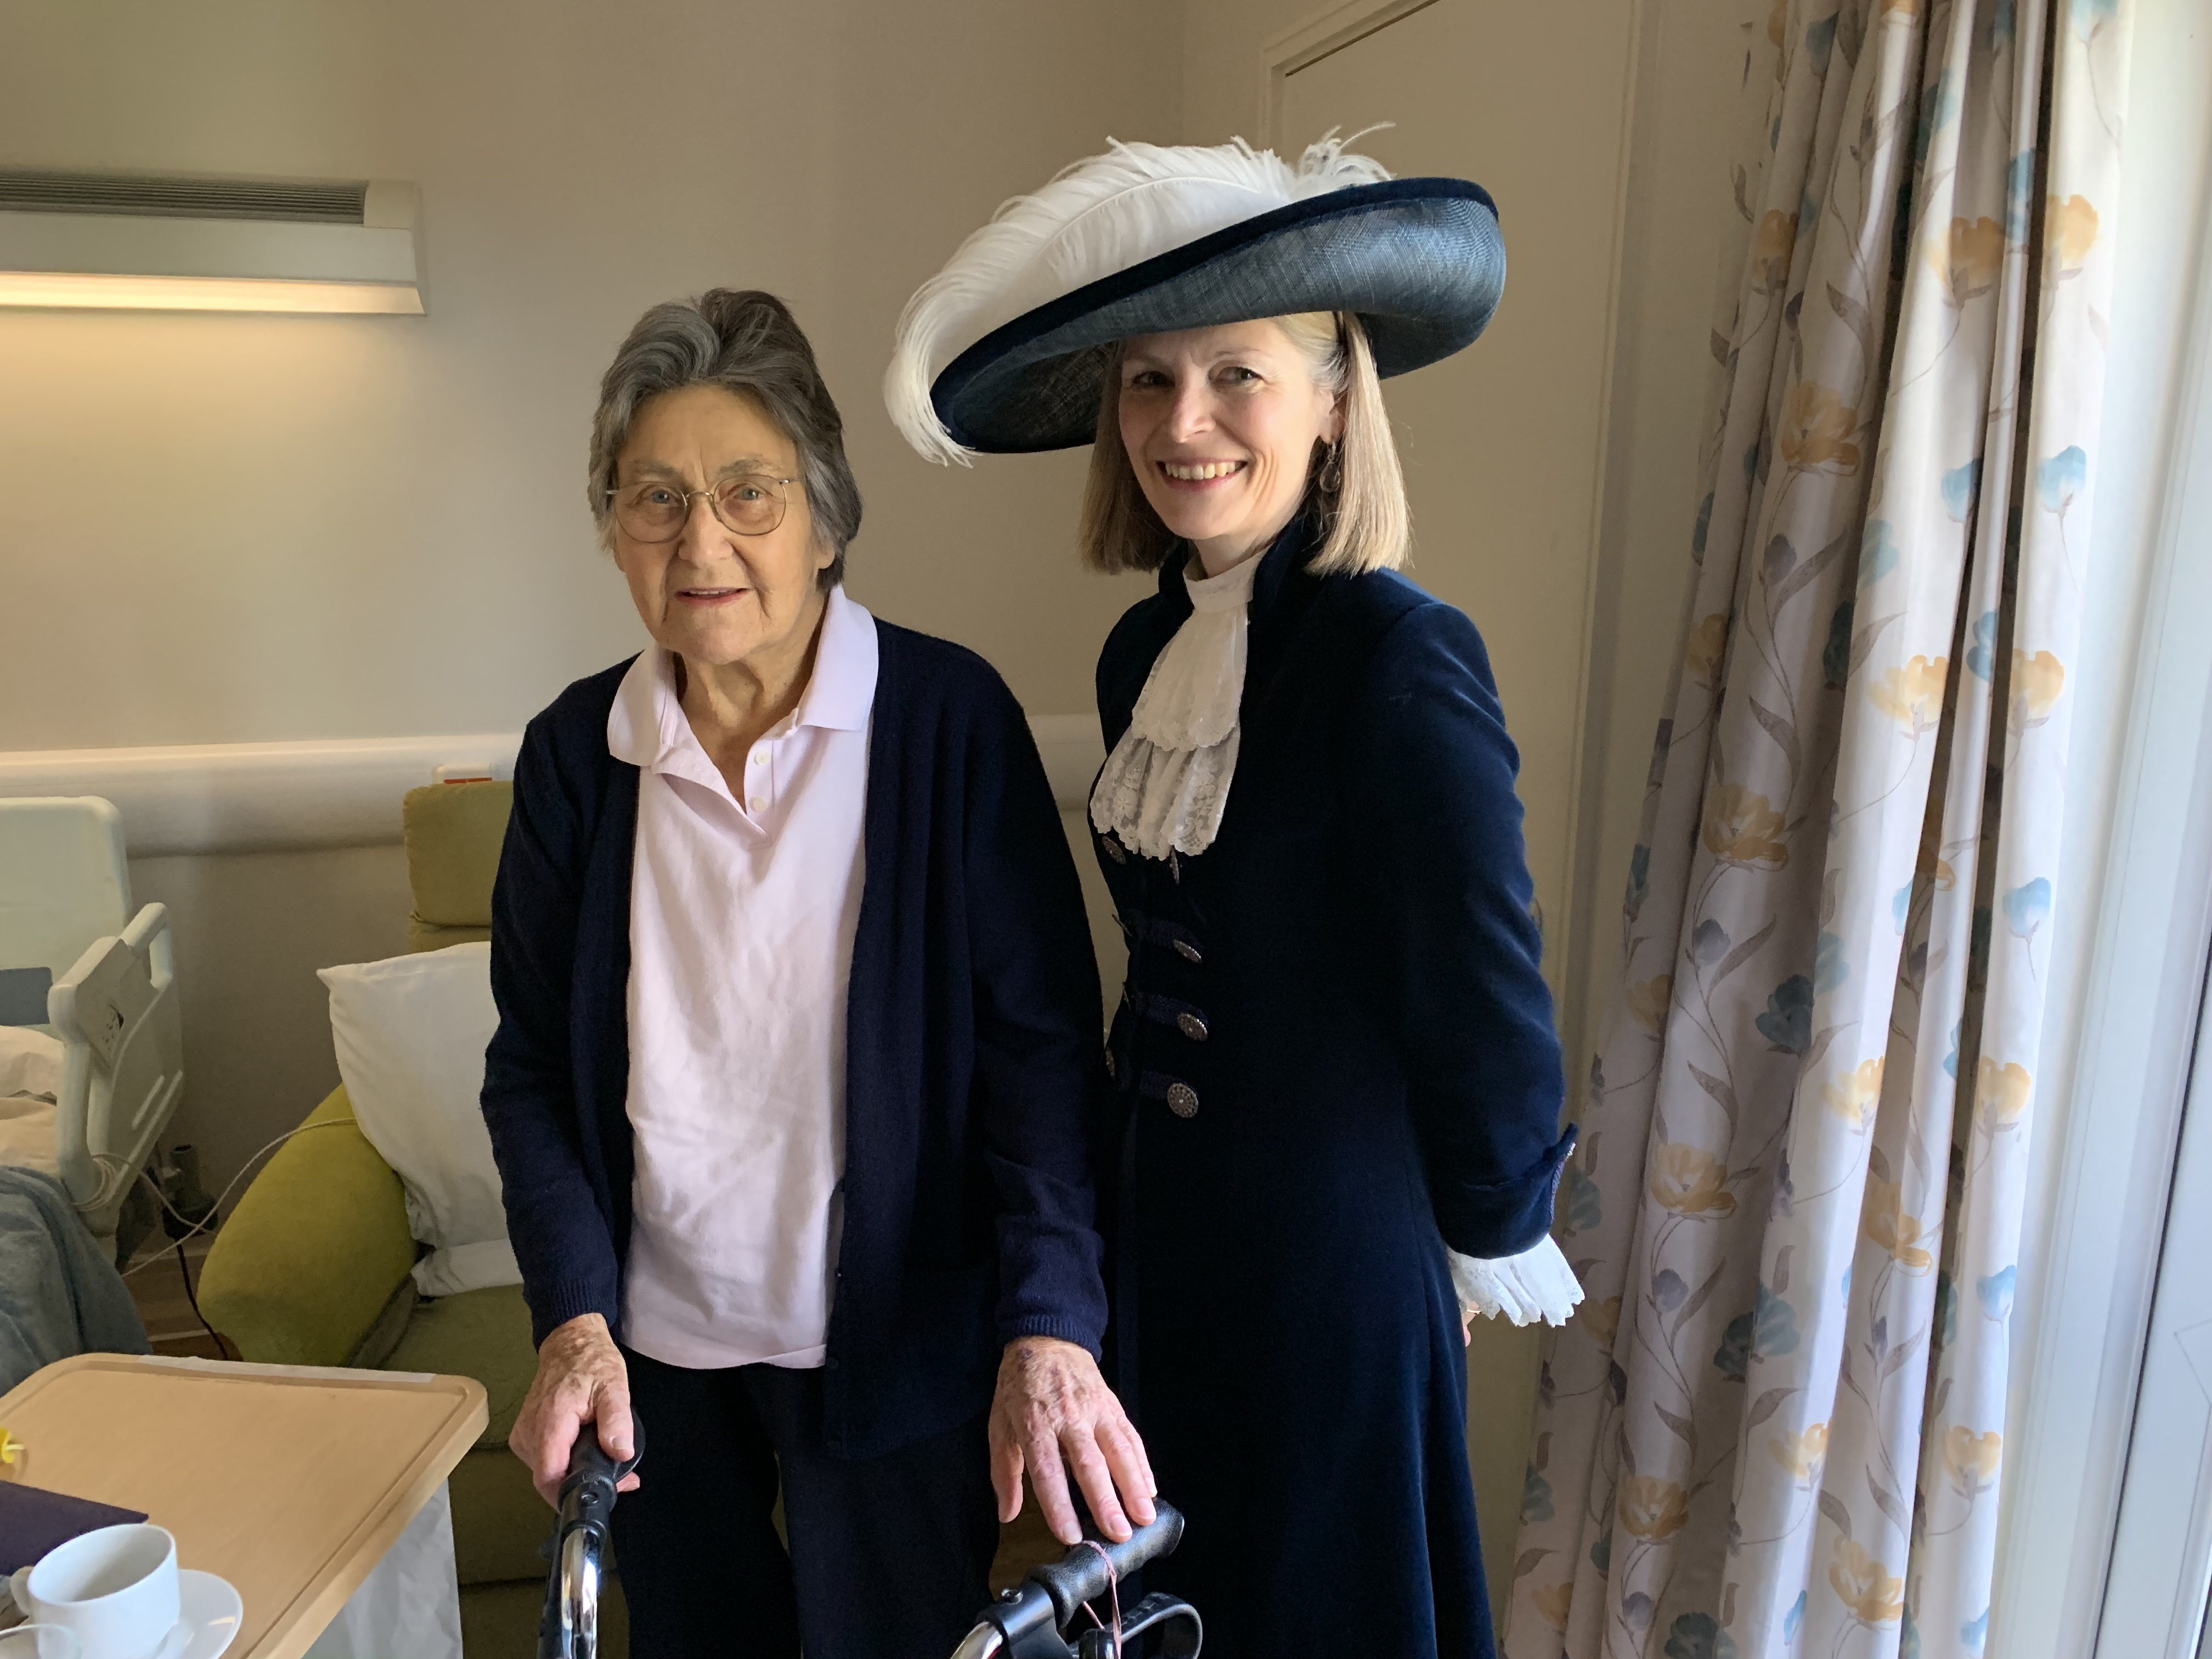 Margaret Phillips meeting the former High Sheriff of Kent, Jane Ashton.